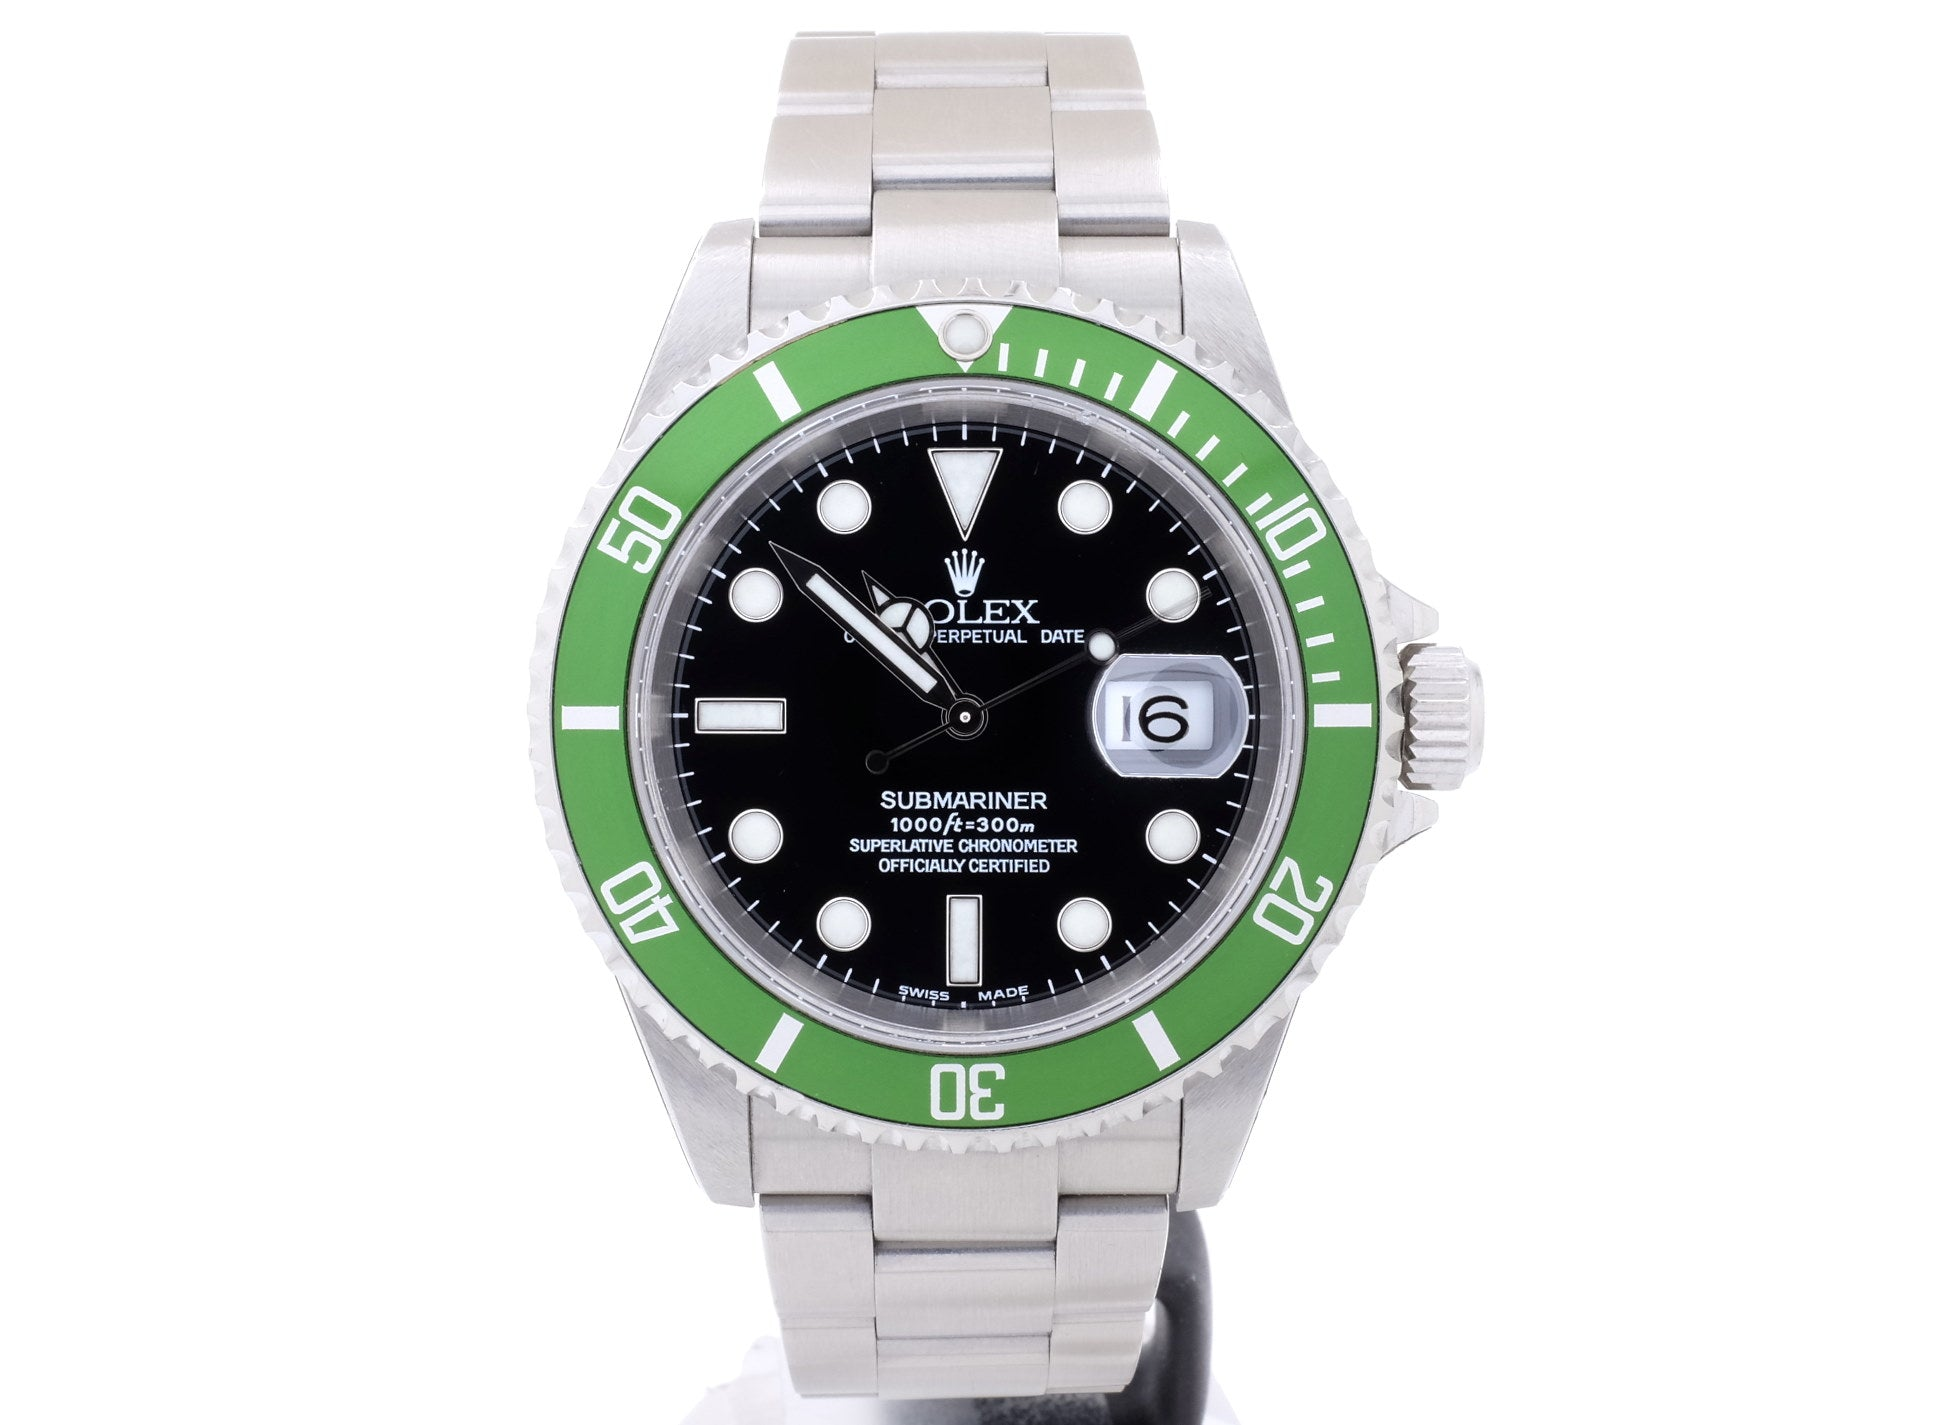 2003 Rolex SUBMARINER DATE 16610LV ('Kermit') with Flat 4